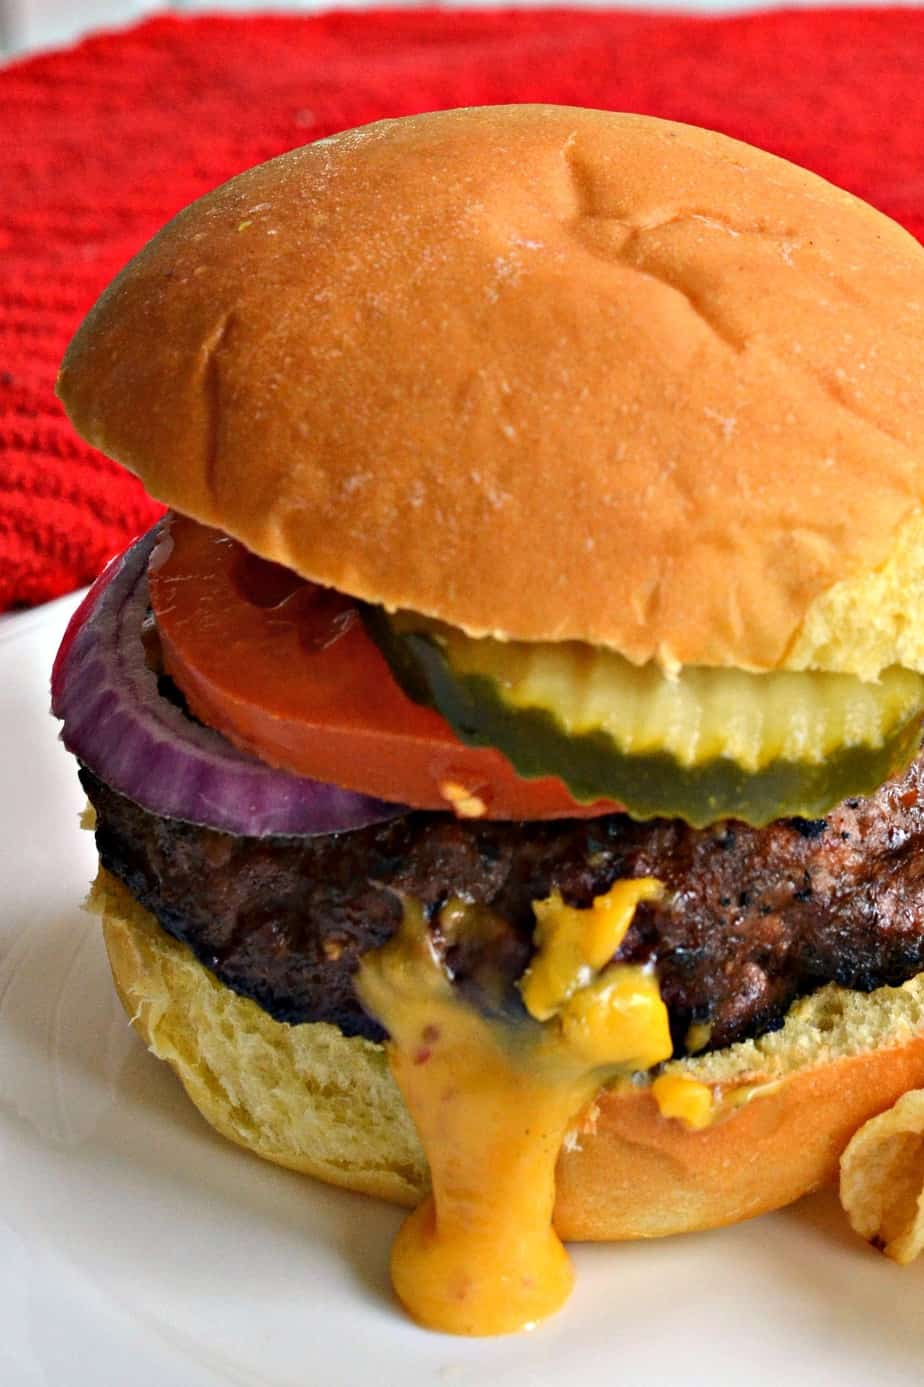 A Juicy Lucy is a juicy grilled beef burger with a pocket of ooey gooey melted cheese.